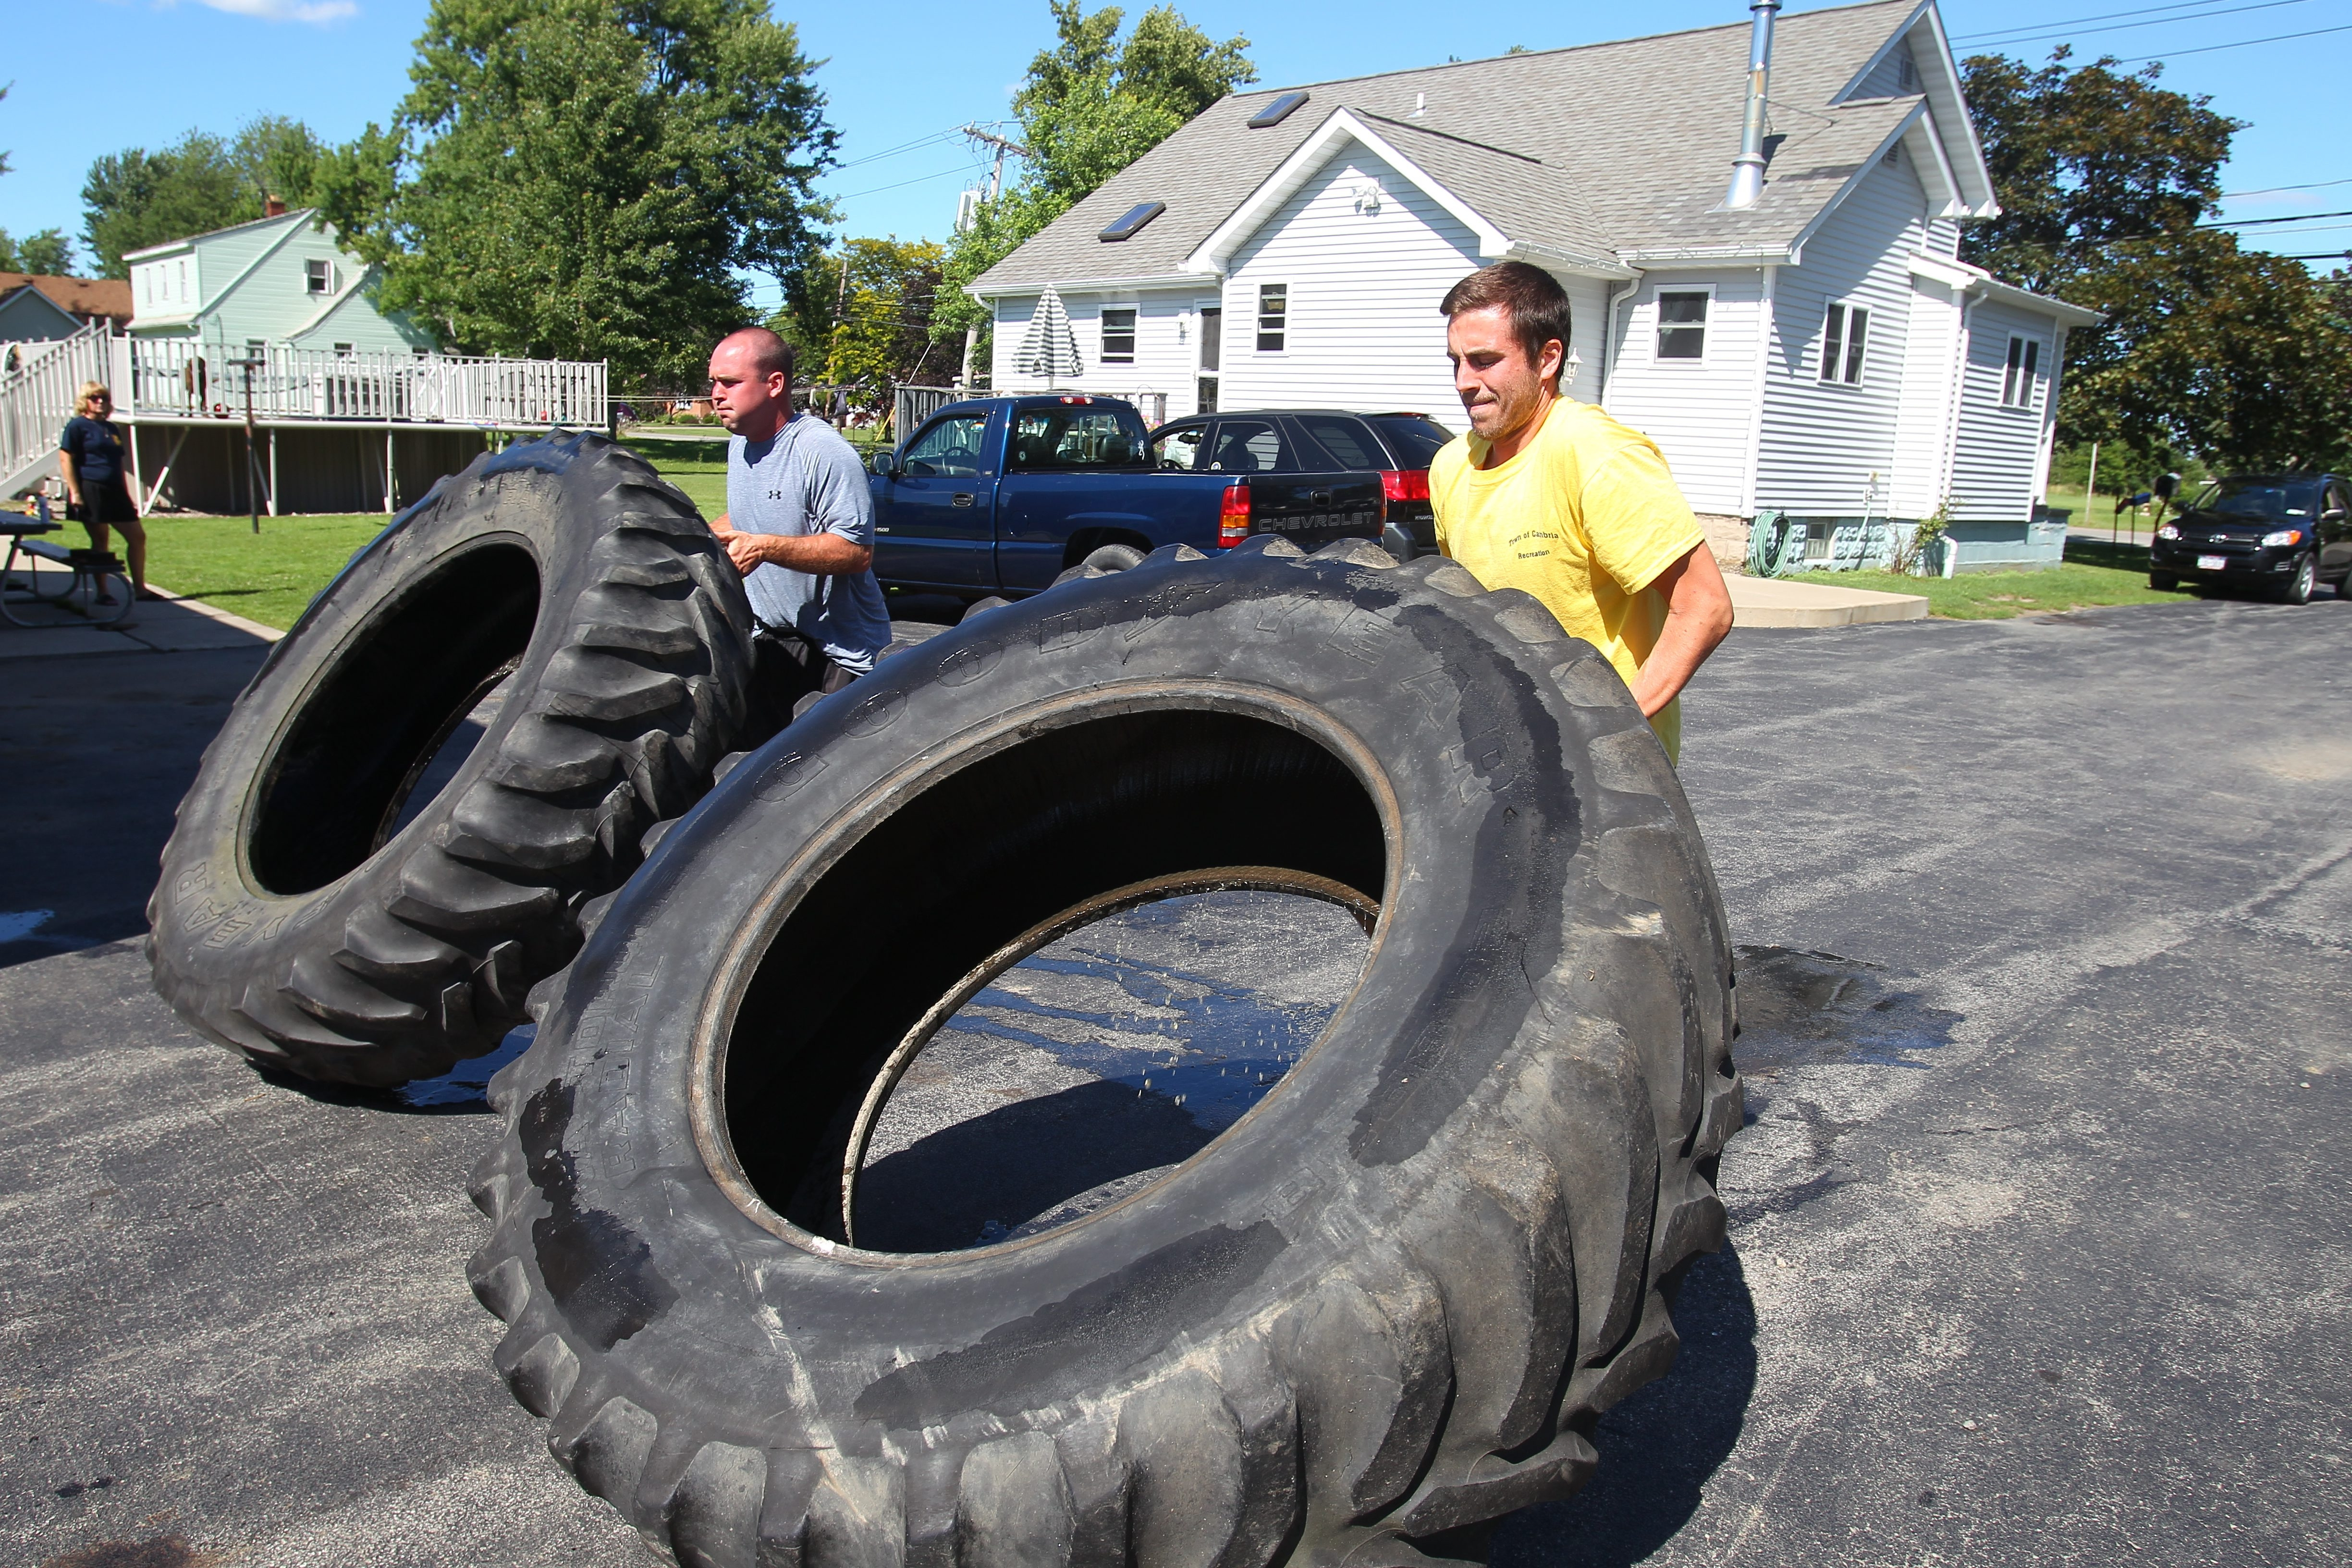 Matt Bove, right, and Andrew Donner flip tires that weigh between 350 to 400 pounds to prepare for the Tough Mudder competition.